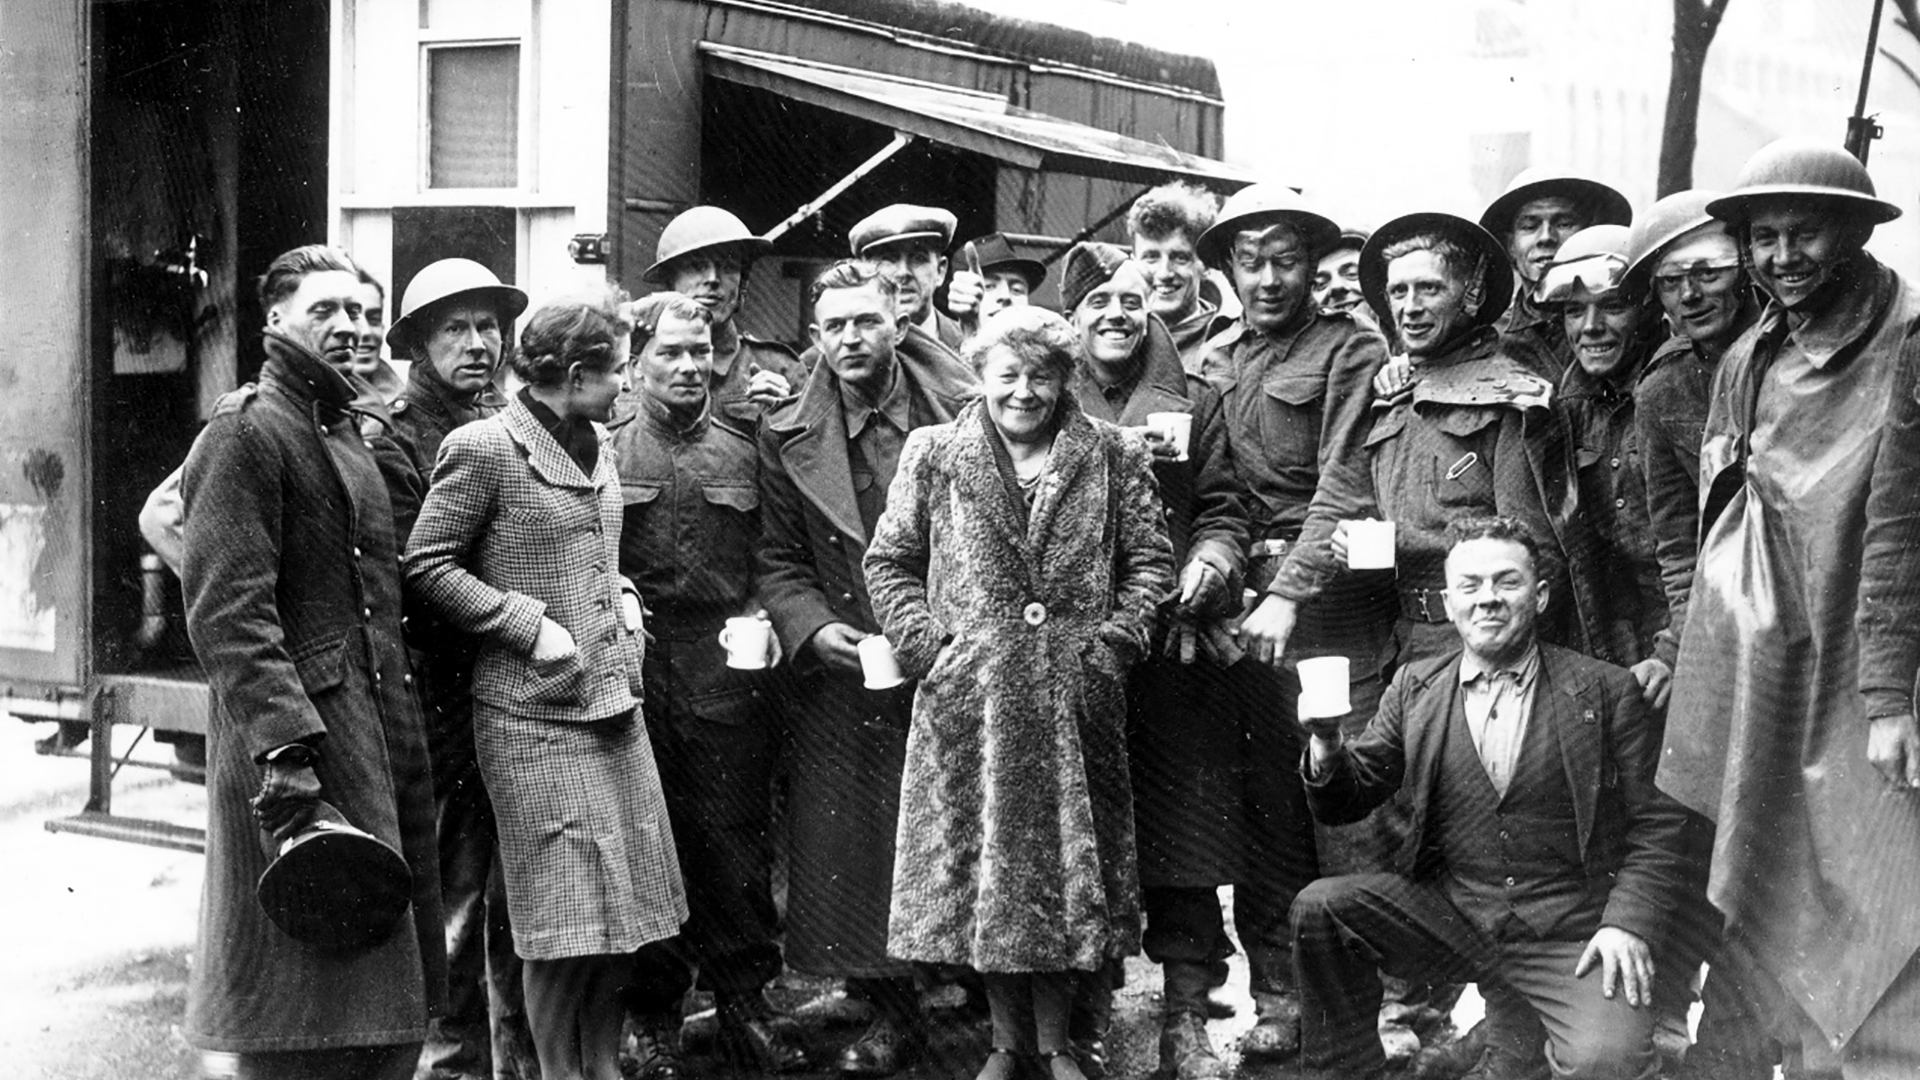 Londonderry Mobile Canteen on York Road, Belfast, Co. Antrim